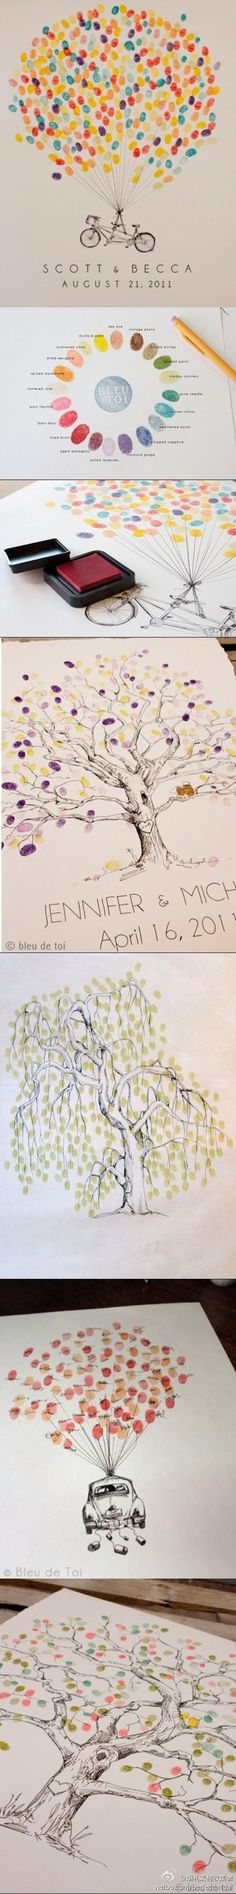 Creative Wedding Fingerprint Tree Alternative Wedding Guestbook Ideas #1919999 - Weddbook